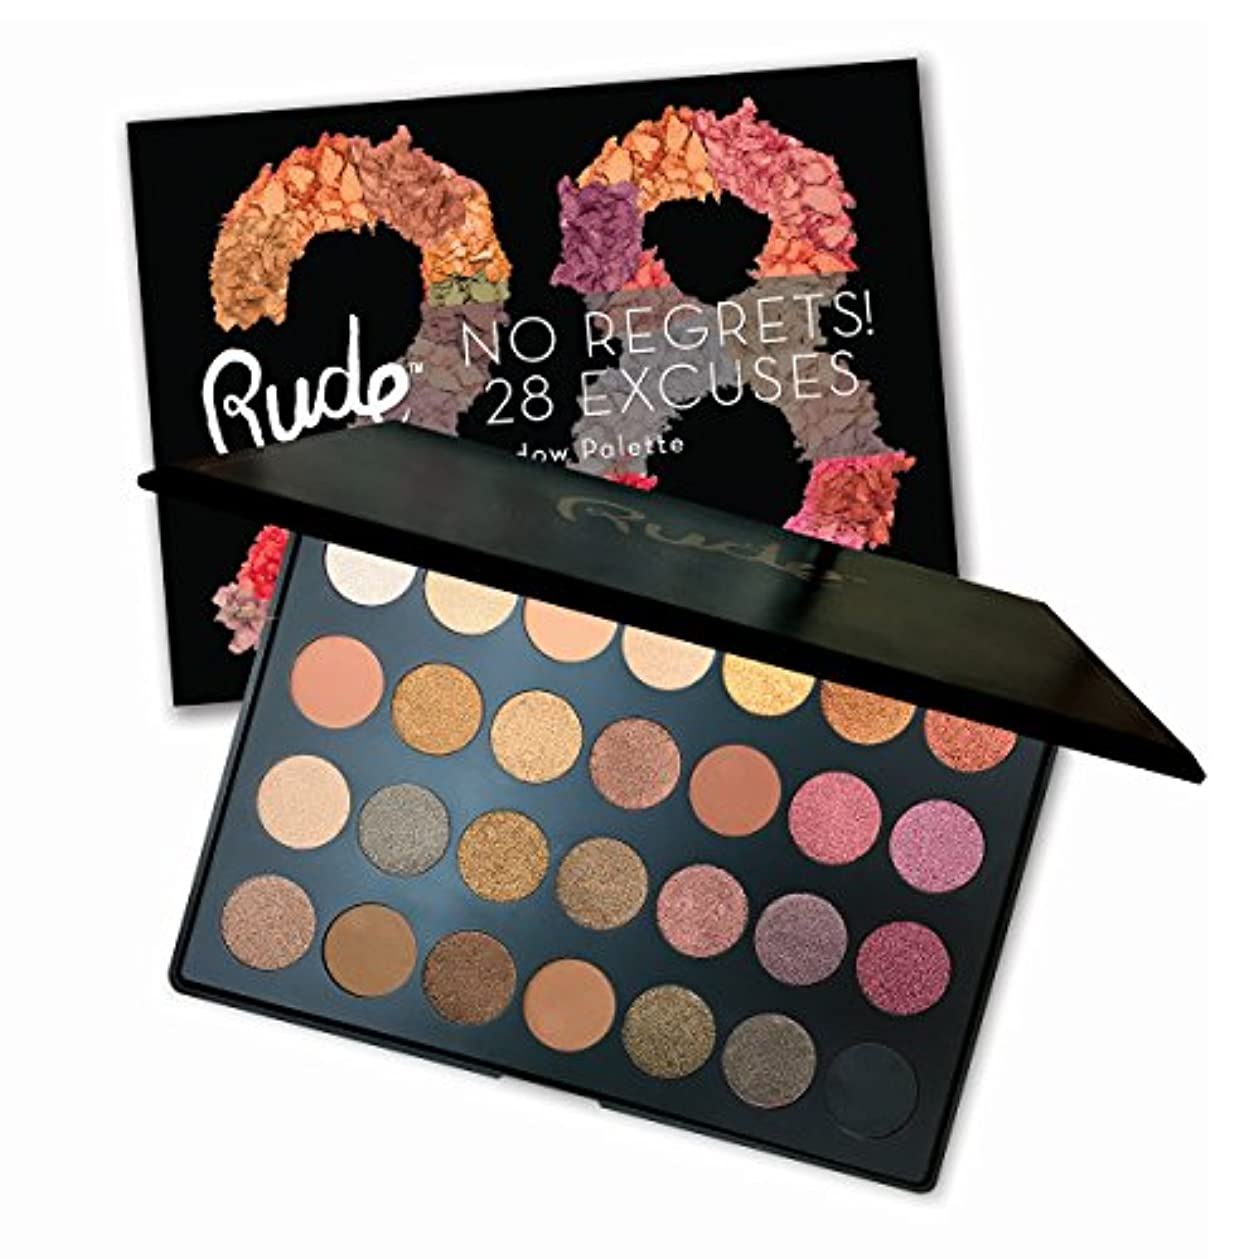 マイルめったにまっすぐRUDE No Regrets! 28 Excuses Eyeshadow Palette - Scorpio (並行輸入品)